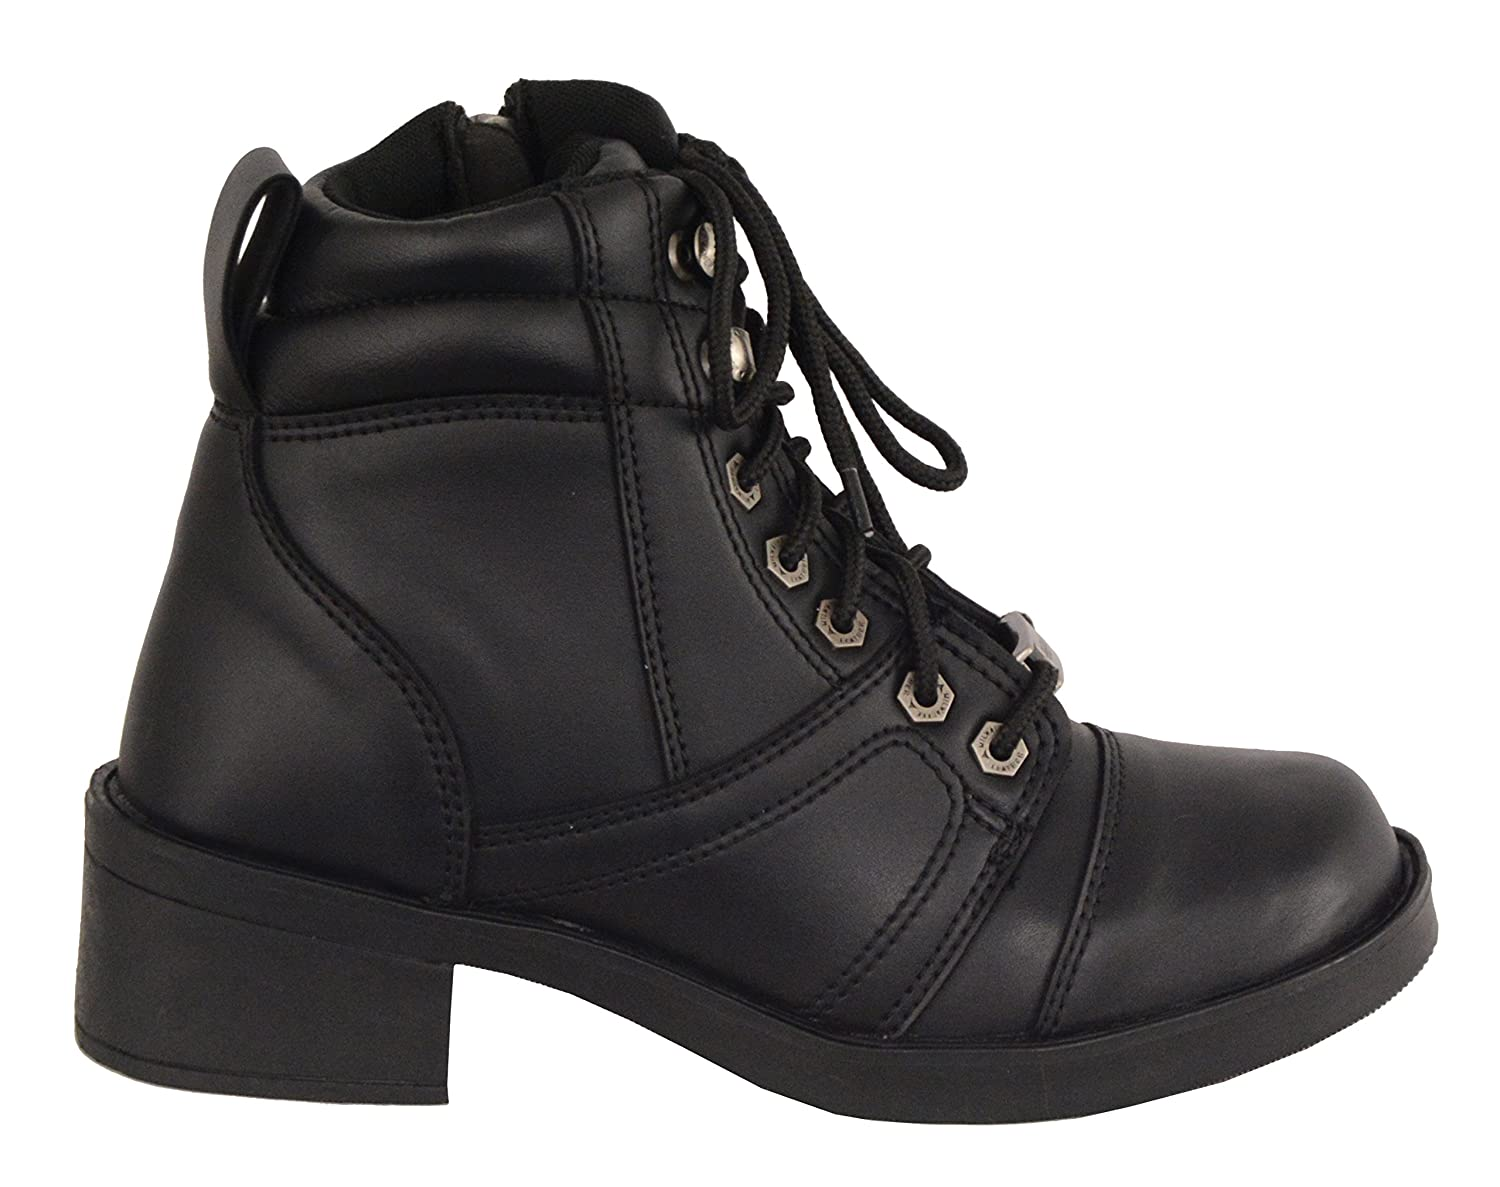 Milwaukee Leather Boys MBK9255-BLK-Kids Youth Side Zipper Lace to Toe Boot Black 6